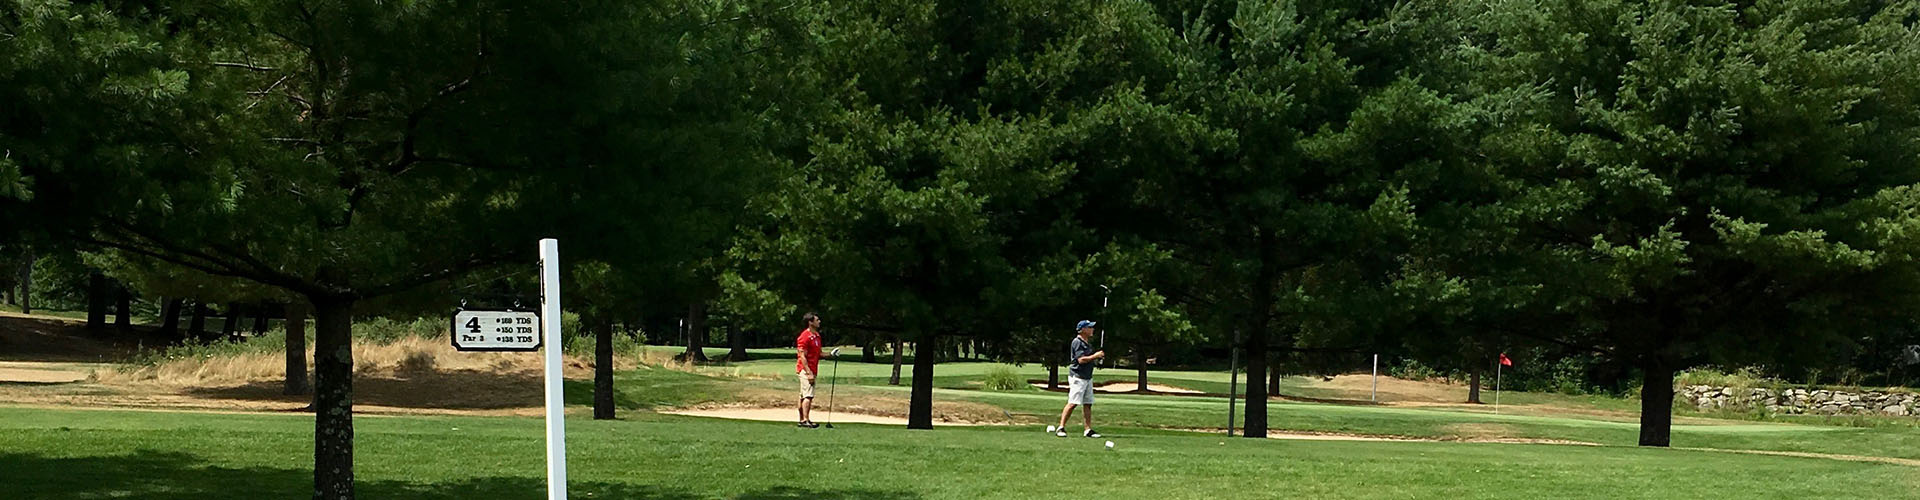 Golfers walk on the course at hole 4